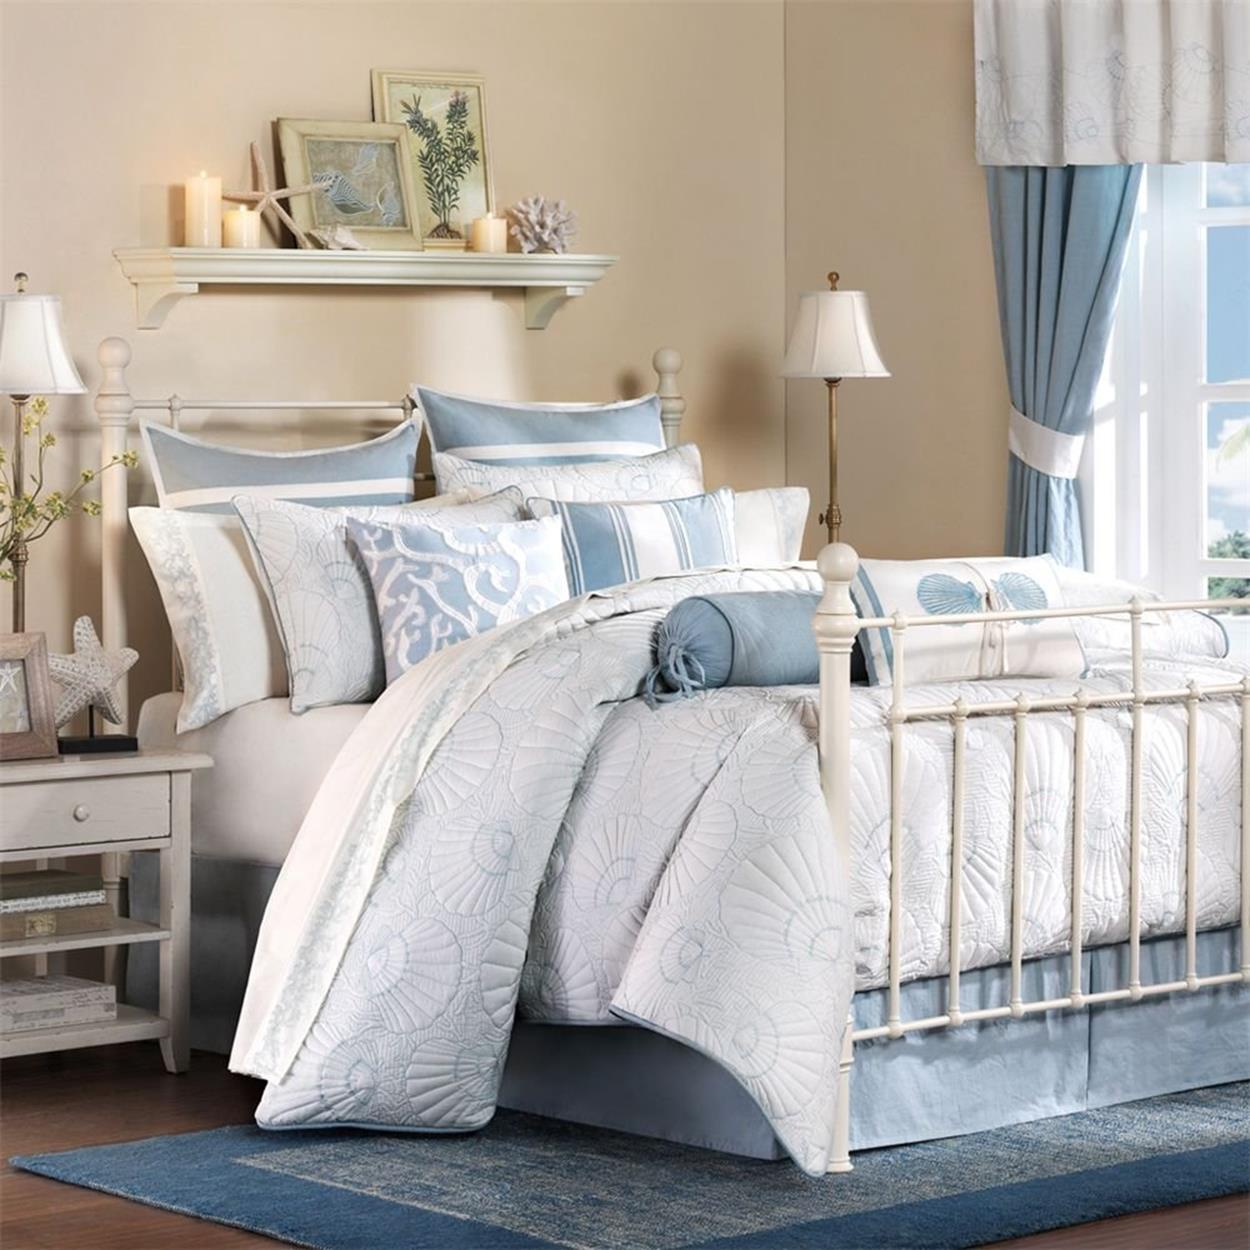 Bed Linen Decorating Ideas 5